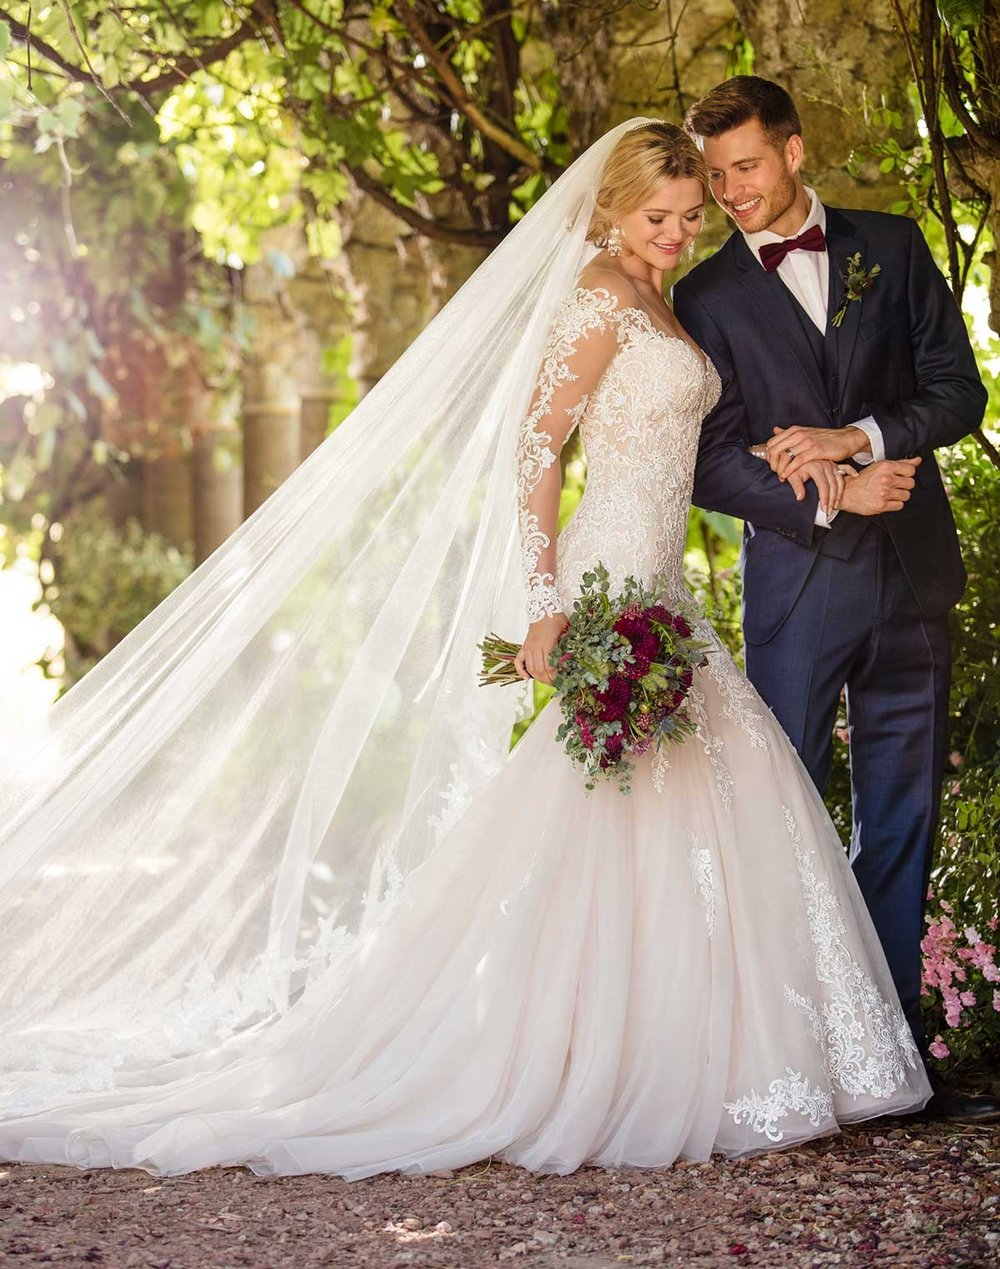 Wedding Dresses with Sleeves | Inventory # 01762 | available at Bride To Be Couture | 6040 Fair Oaks Blvd. Carmichael, CA 95608 | 916.972.8223 | @bridetobecouture